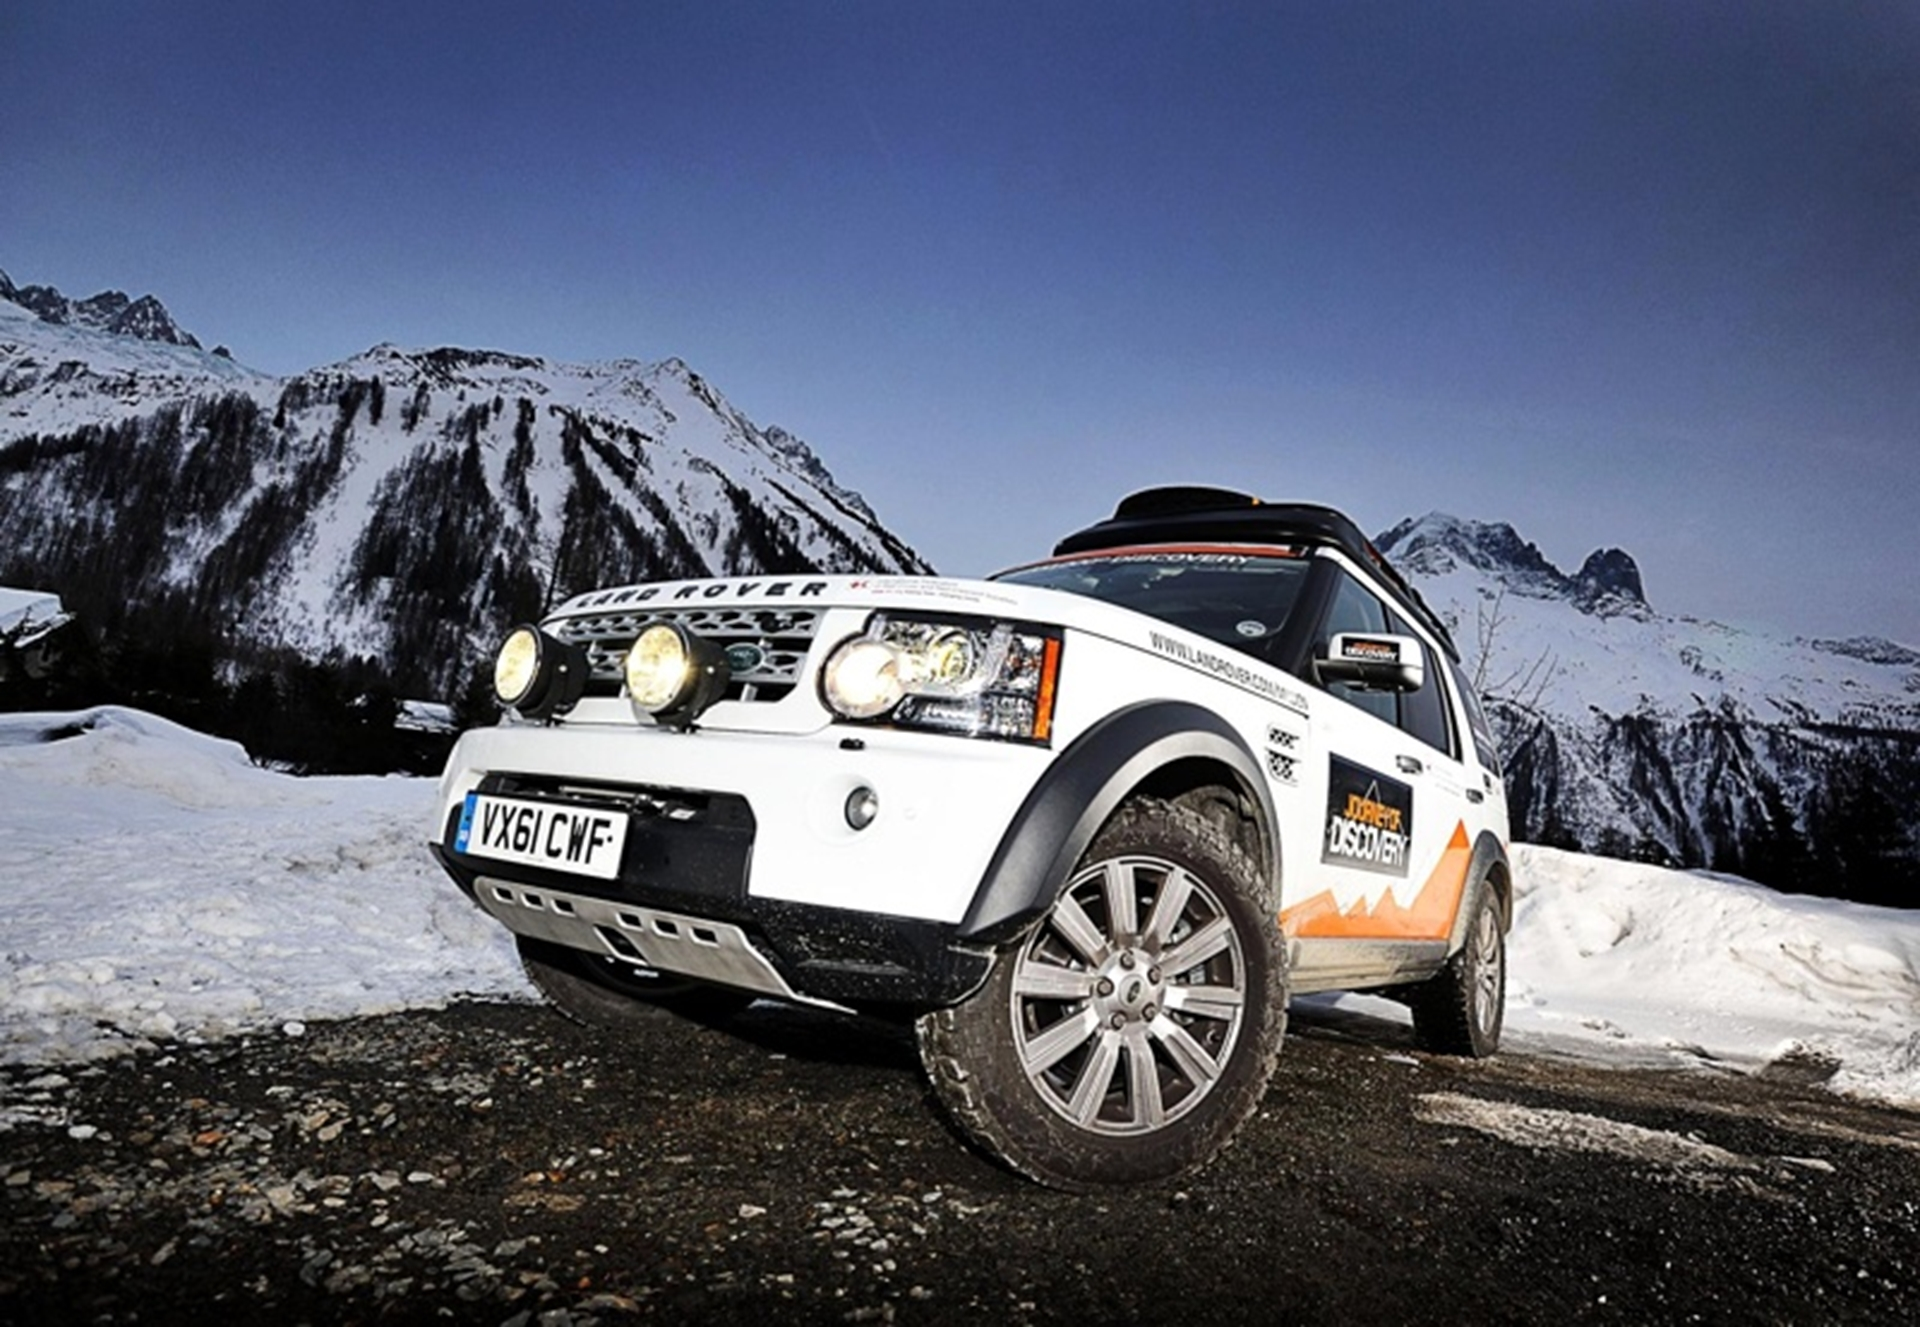 Land Rover Journey Of Discovery